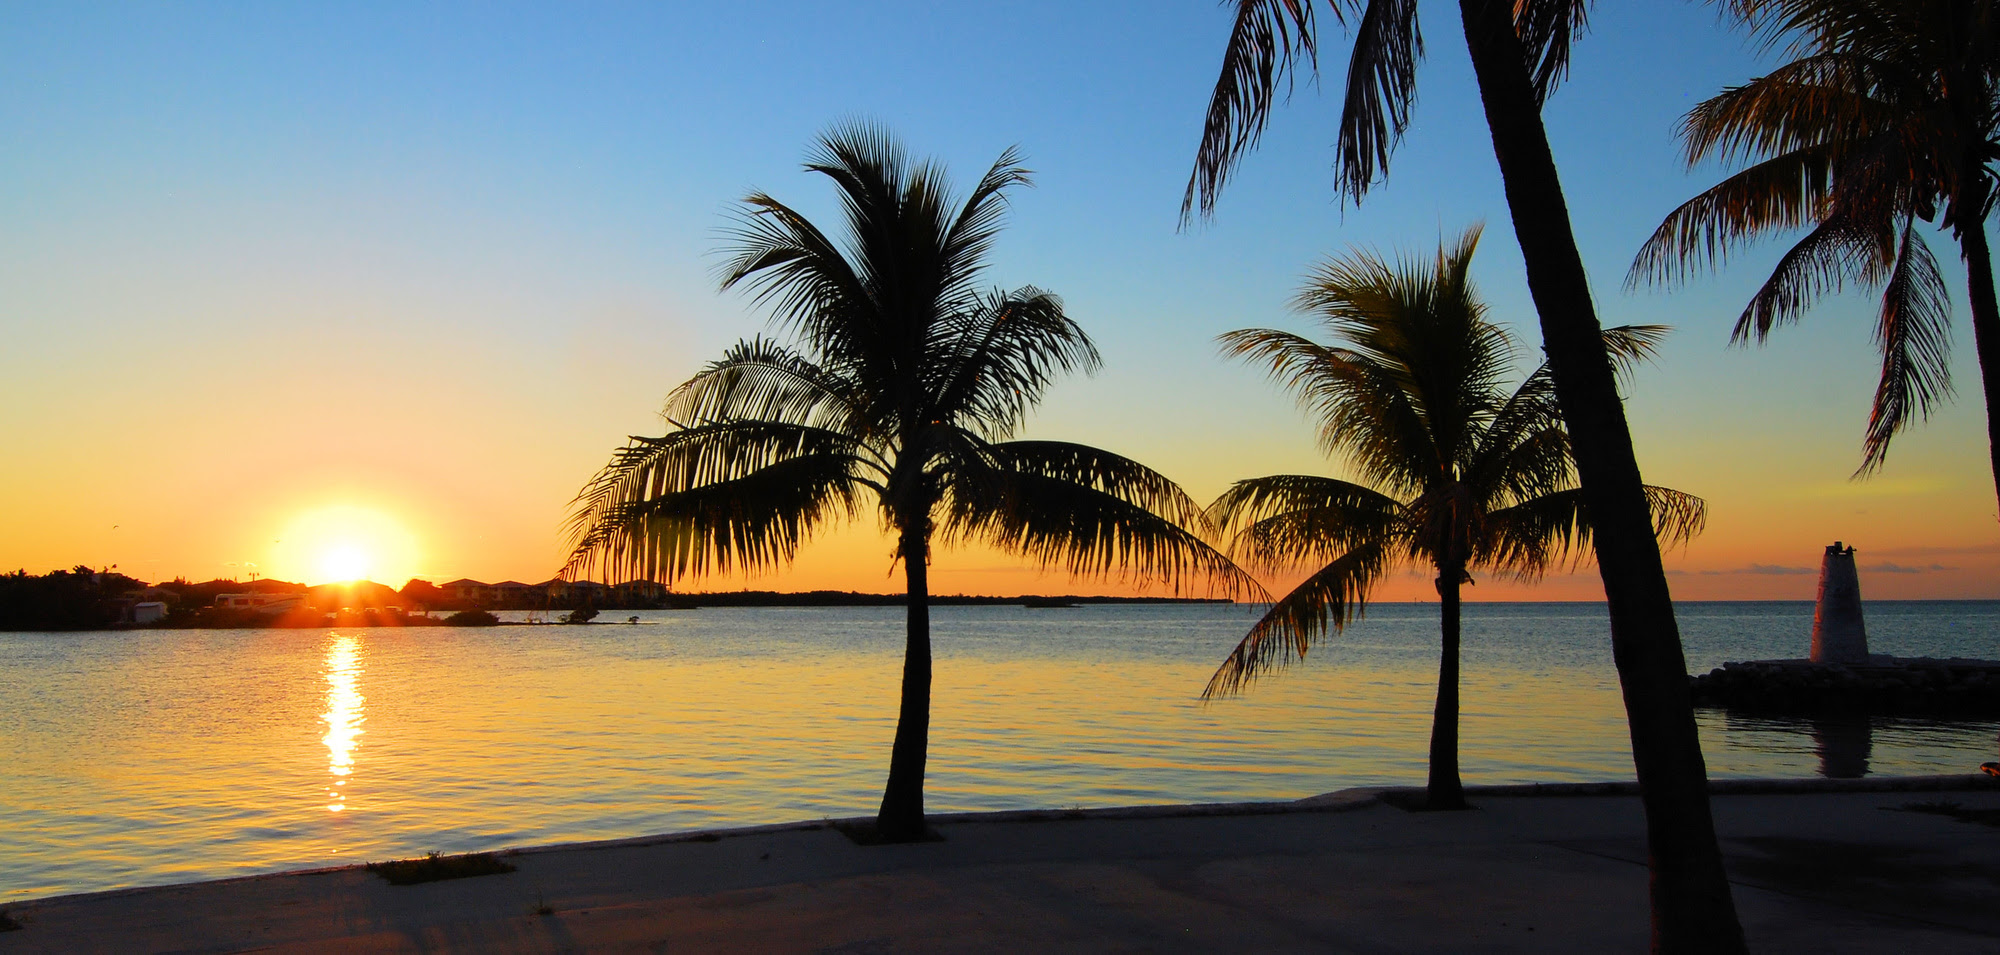 Sunshine State Guide The 10 Most Beautiful Places to